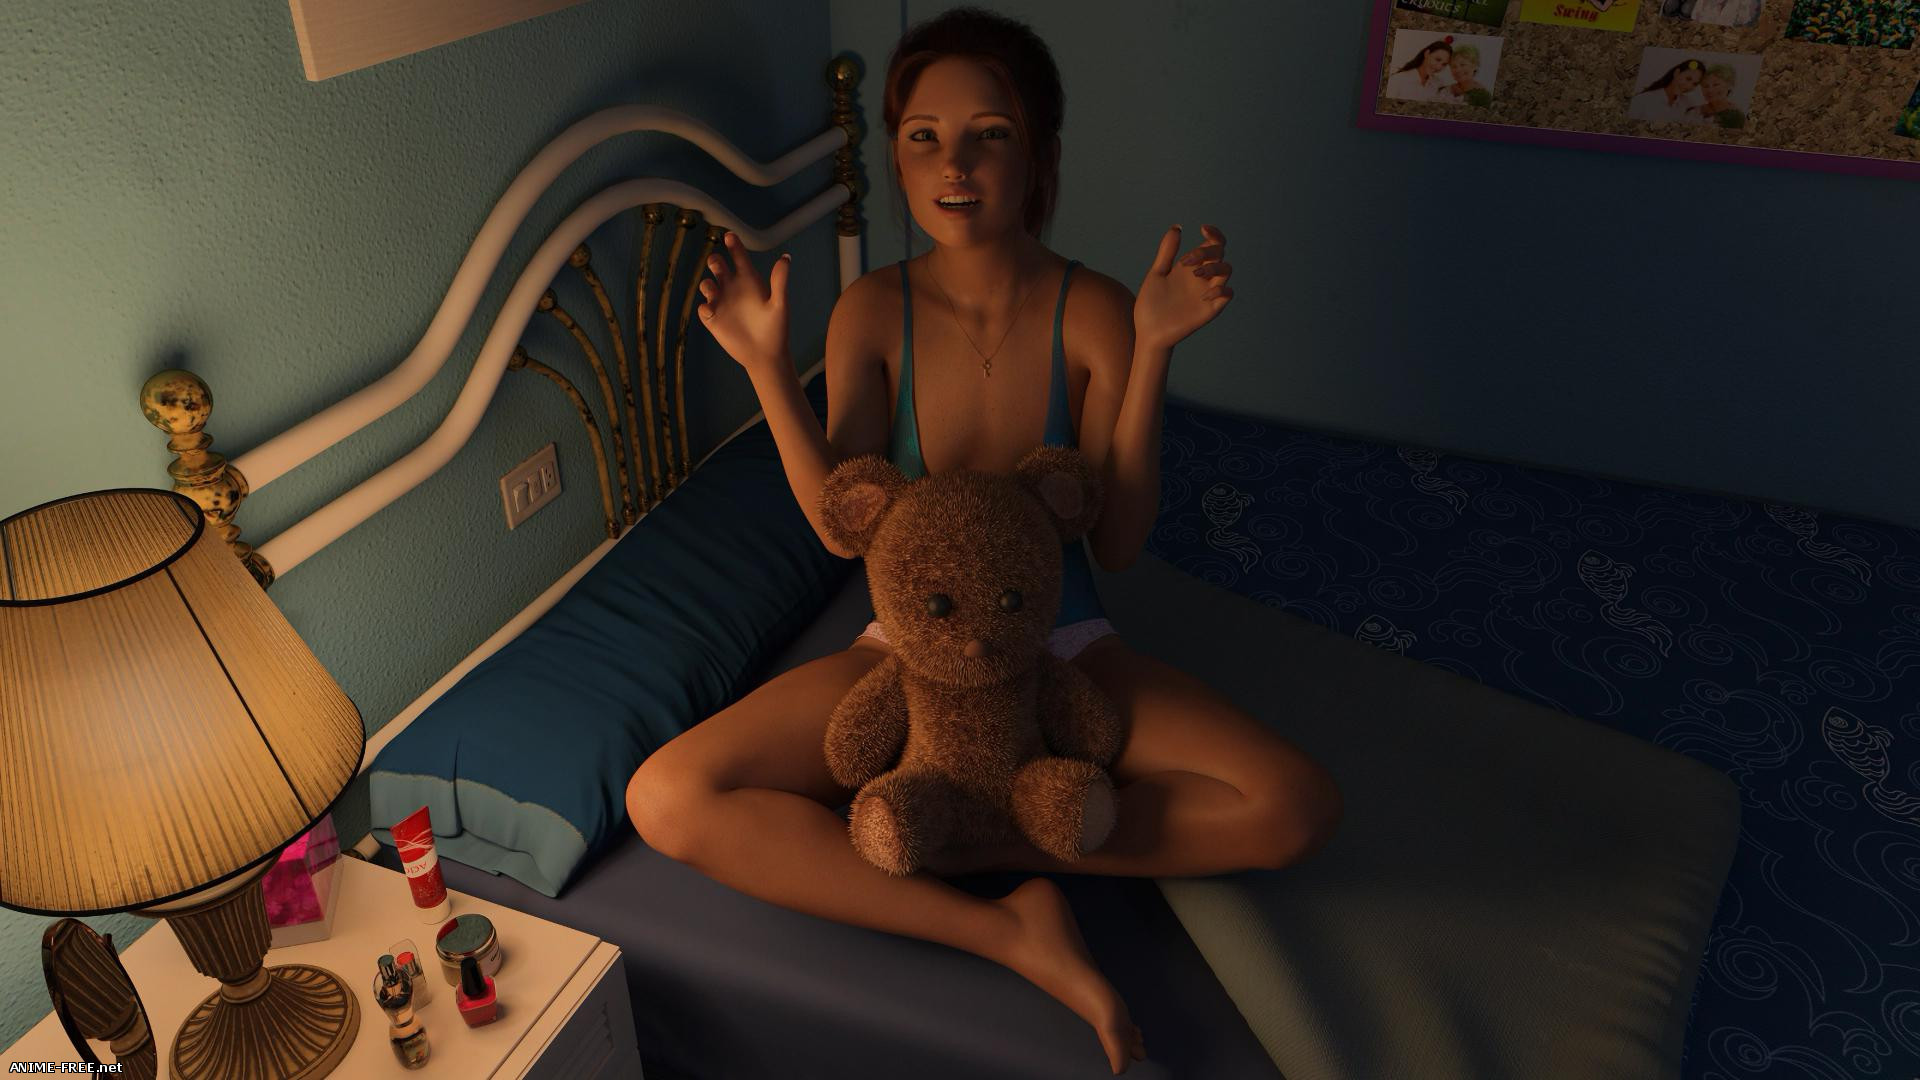 Halfway House / Дом на полпути [2019] [Uncen] [ADV, 3DCG] [Android Compatible] [ENG,RUS] H-Game